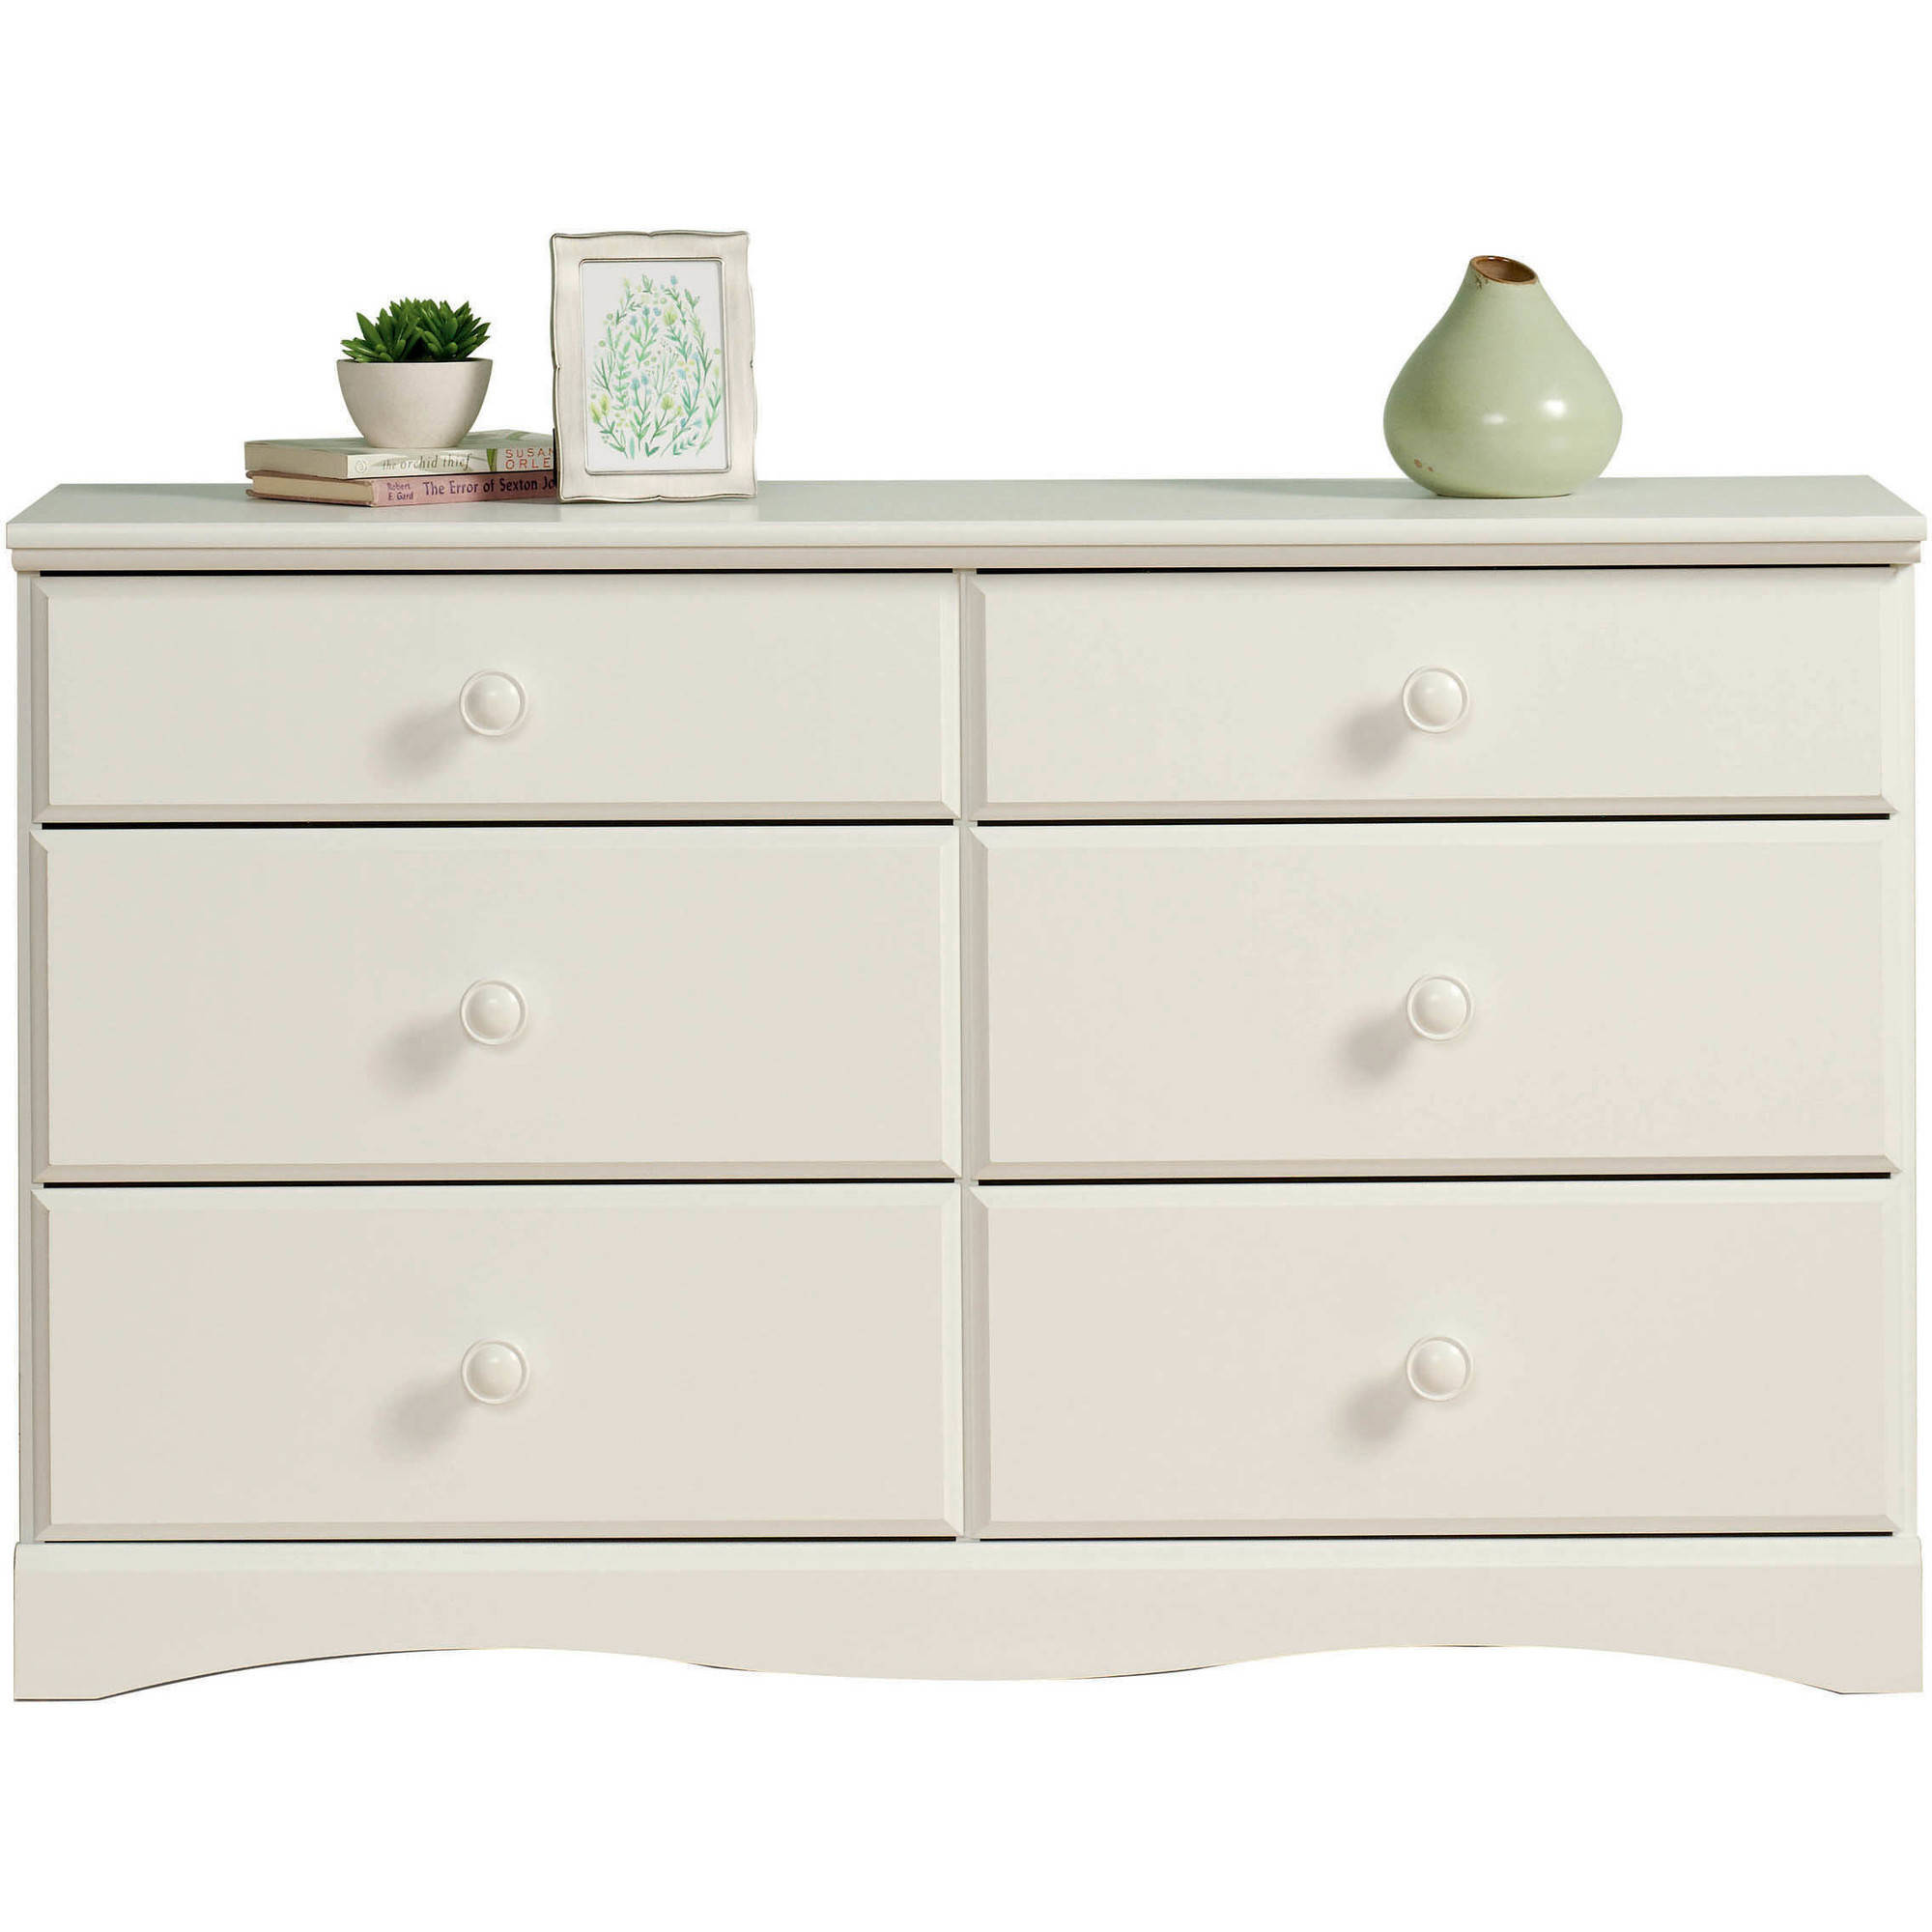 Mainstays Storybook 6-Drawer Dresser, Soft White Finish by Sauder Woodworking